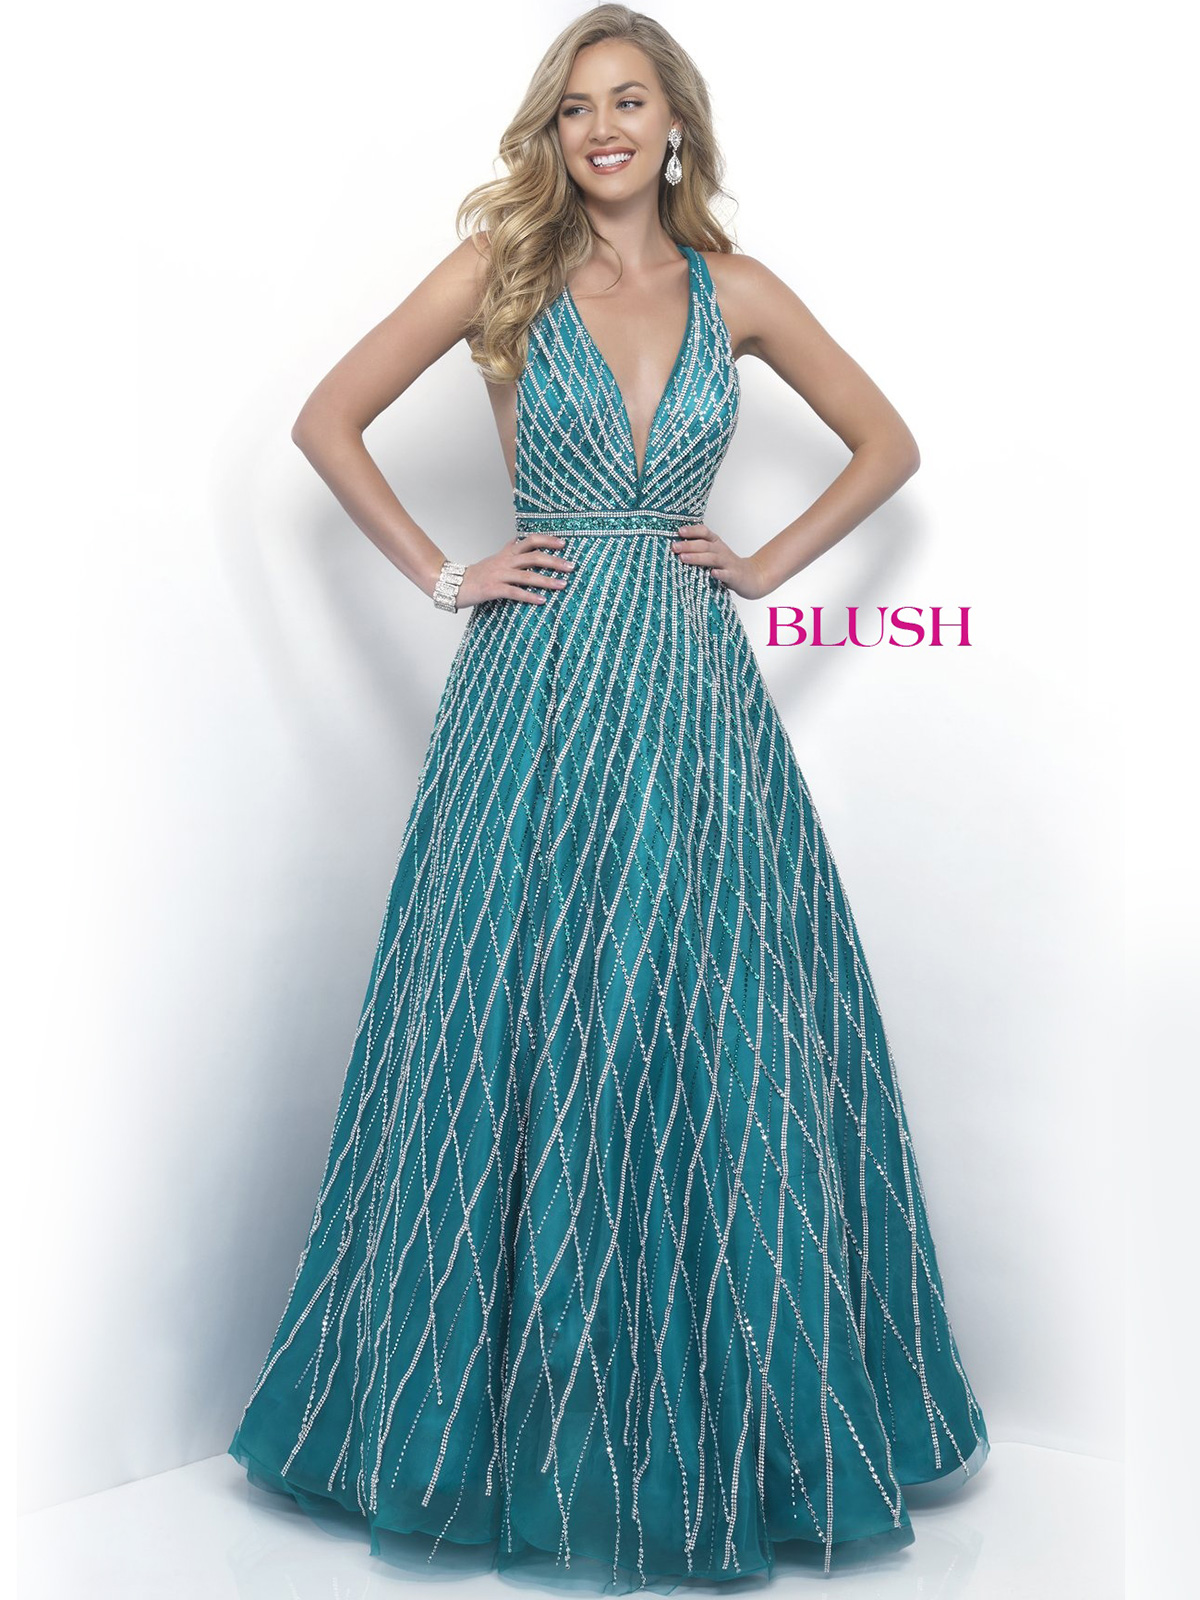 Gallant Miss Pageant Dresses School Pageant Gowns Teen Pageant Dresses Dresses Teenagers Teenagers Near Me Sun Dresses wedding dress Dresses For Teenagers